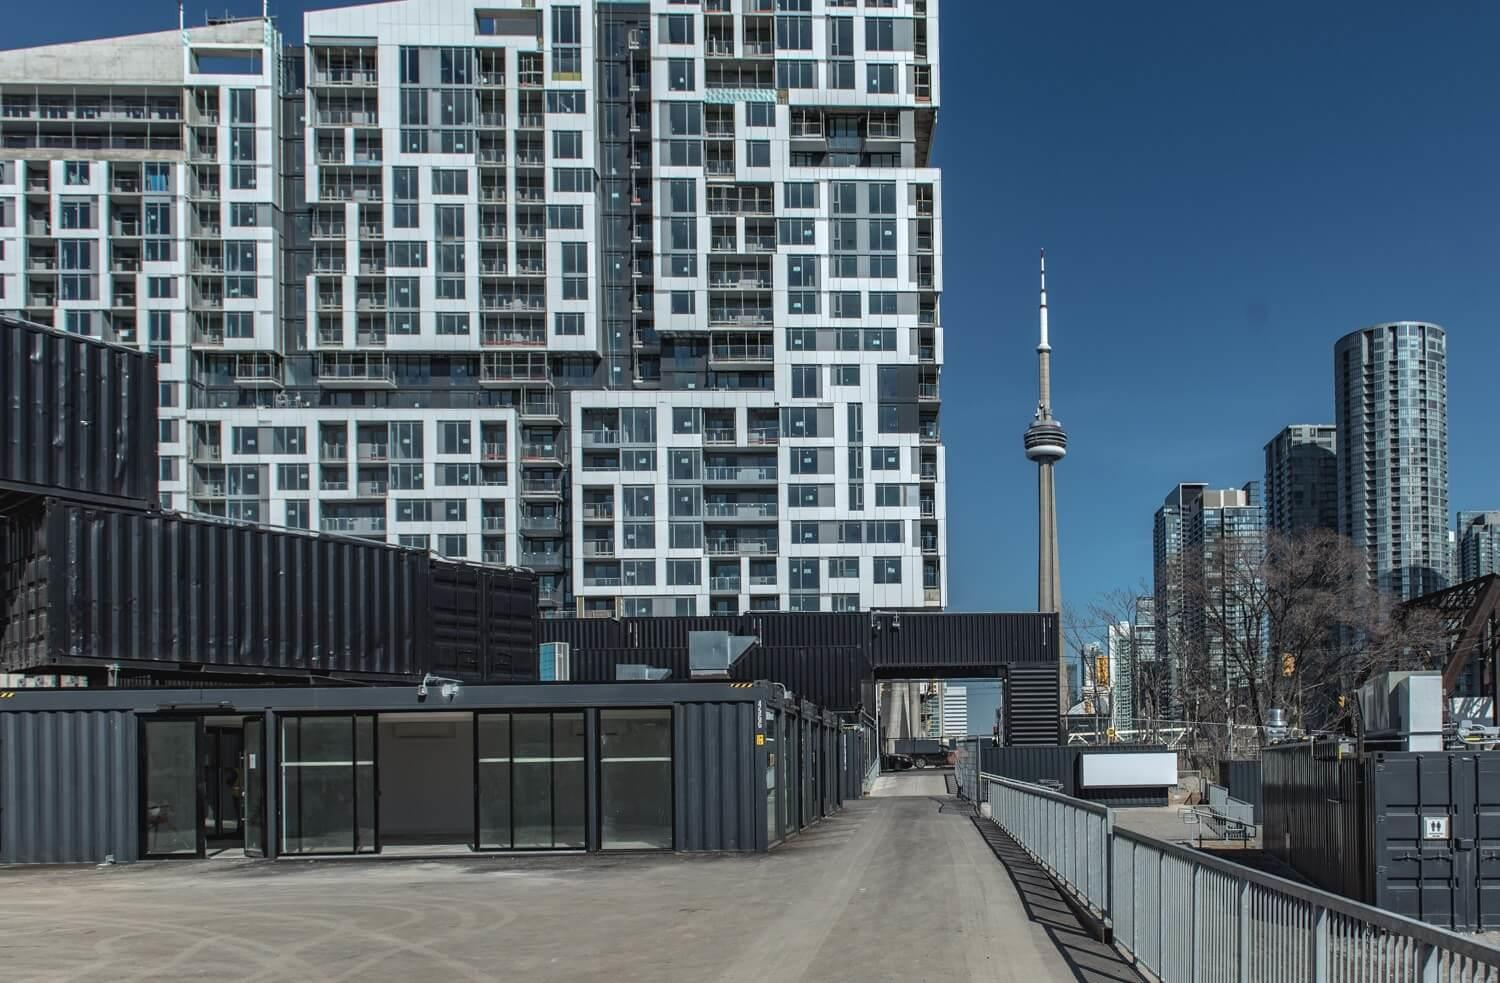 New shipping container market in Toronto now open! Image